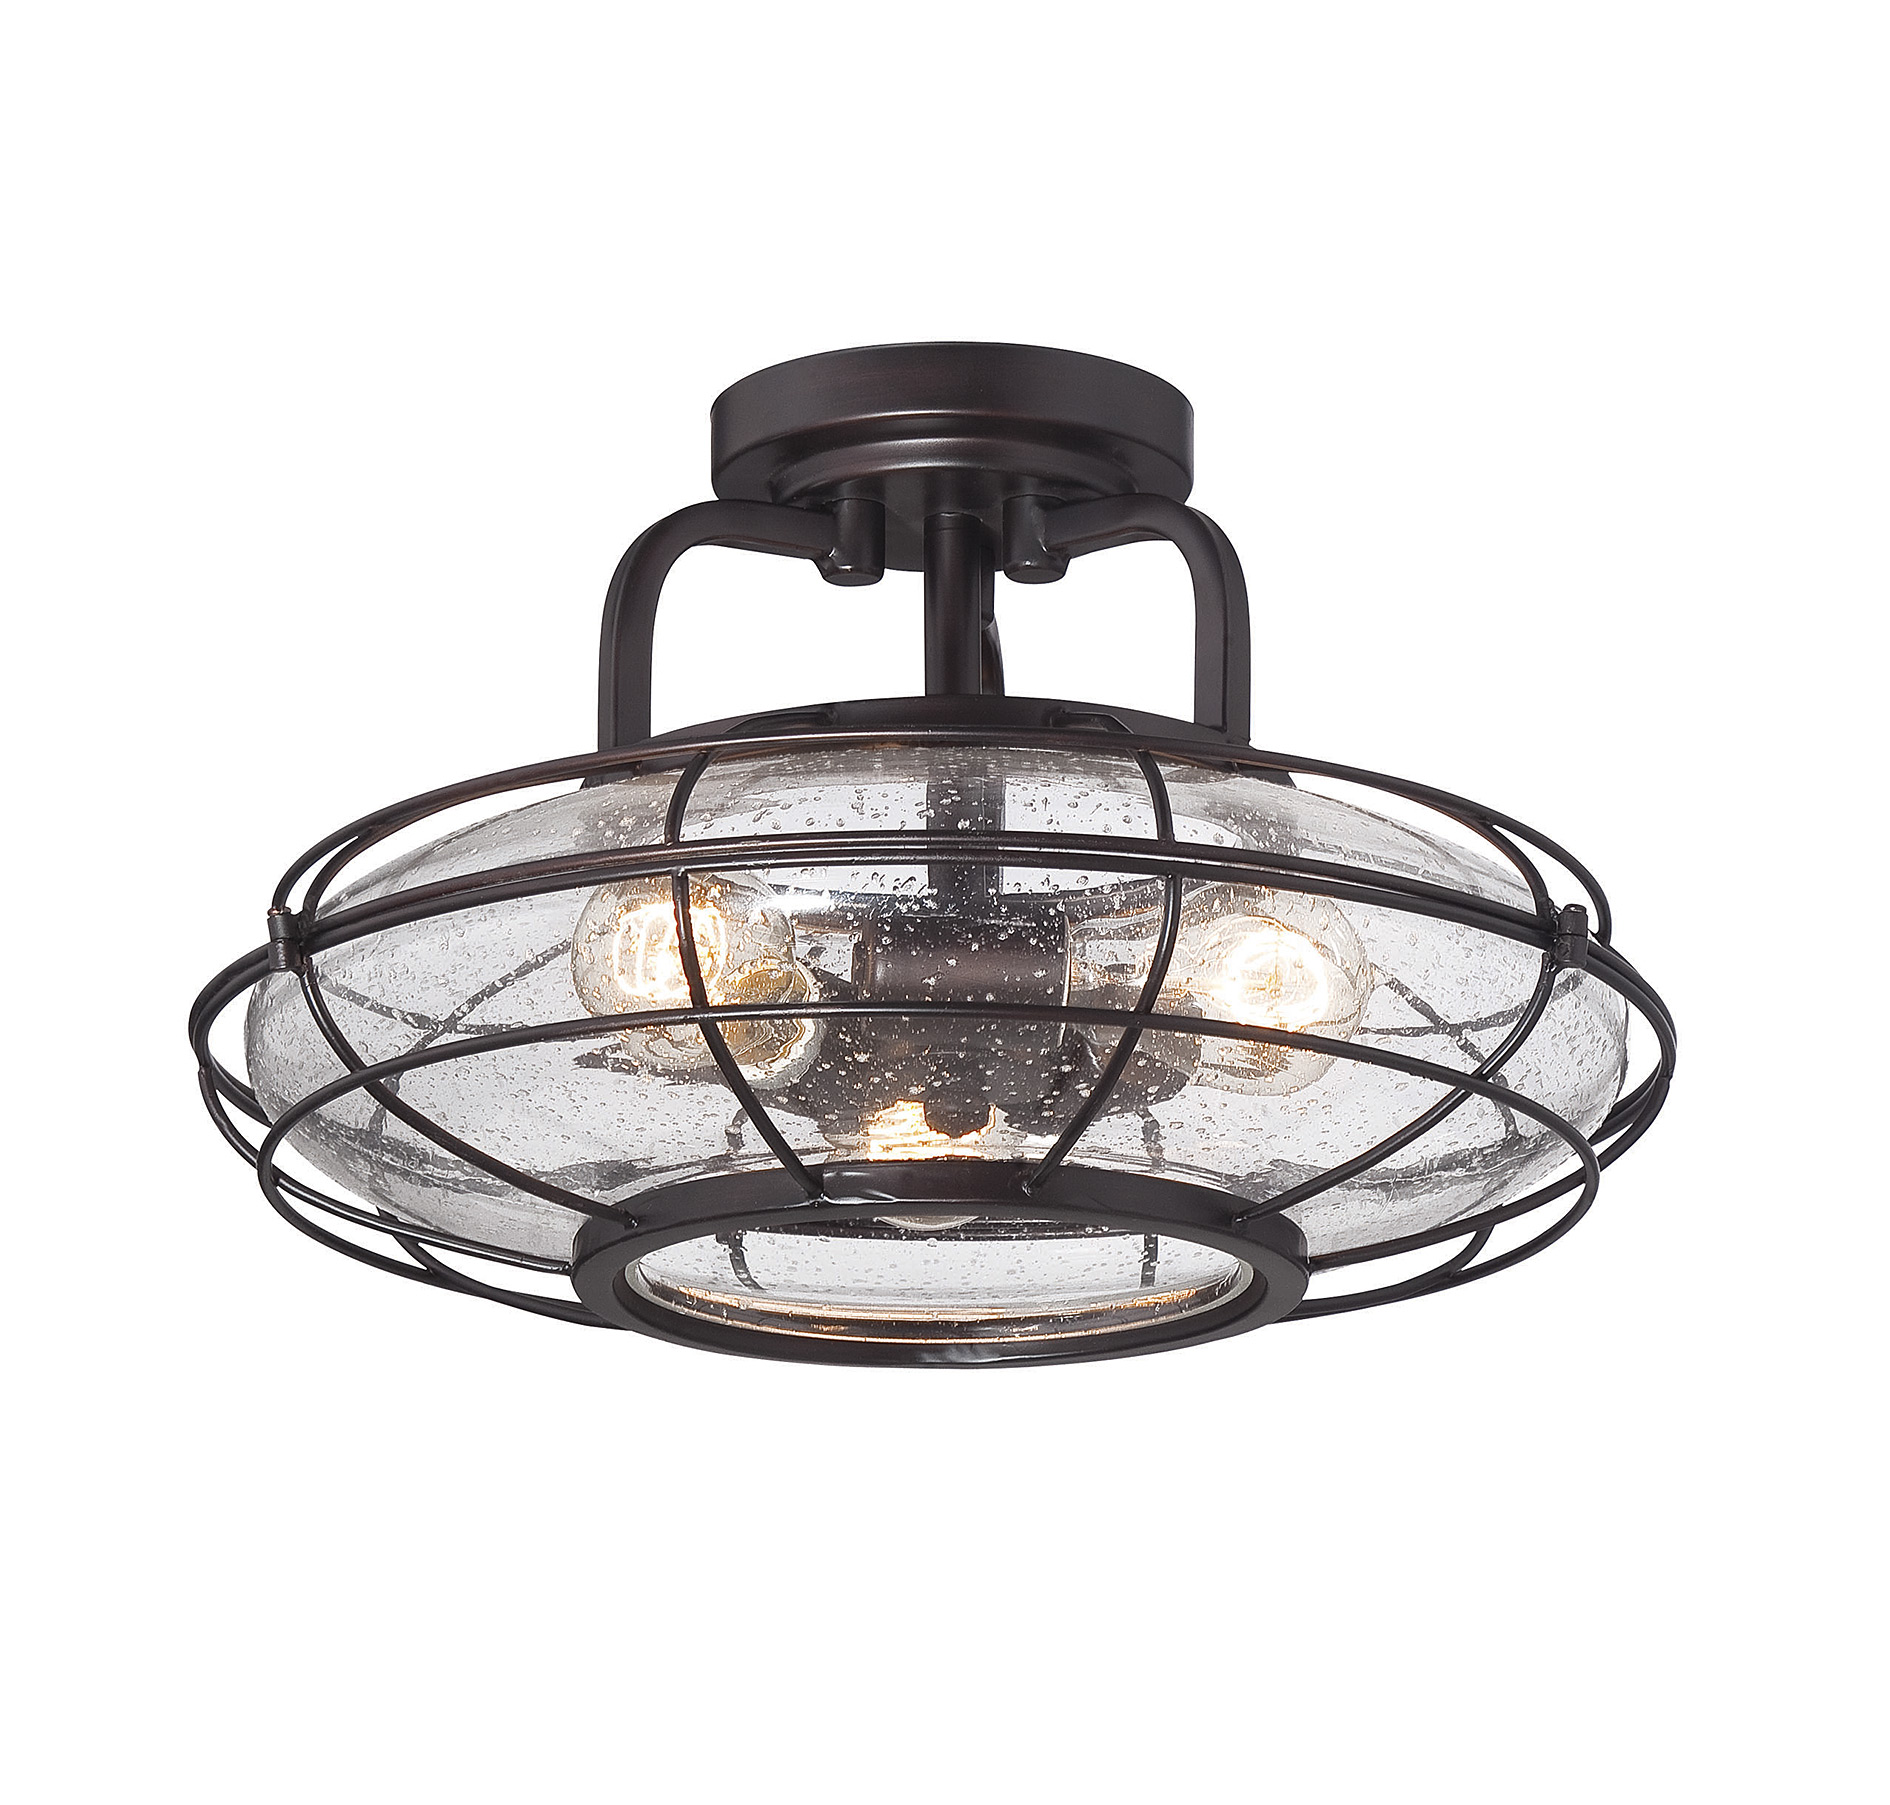 Connell Ceiling Semi Flush Light By Savoy House 6 574 3 13